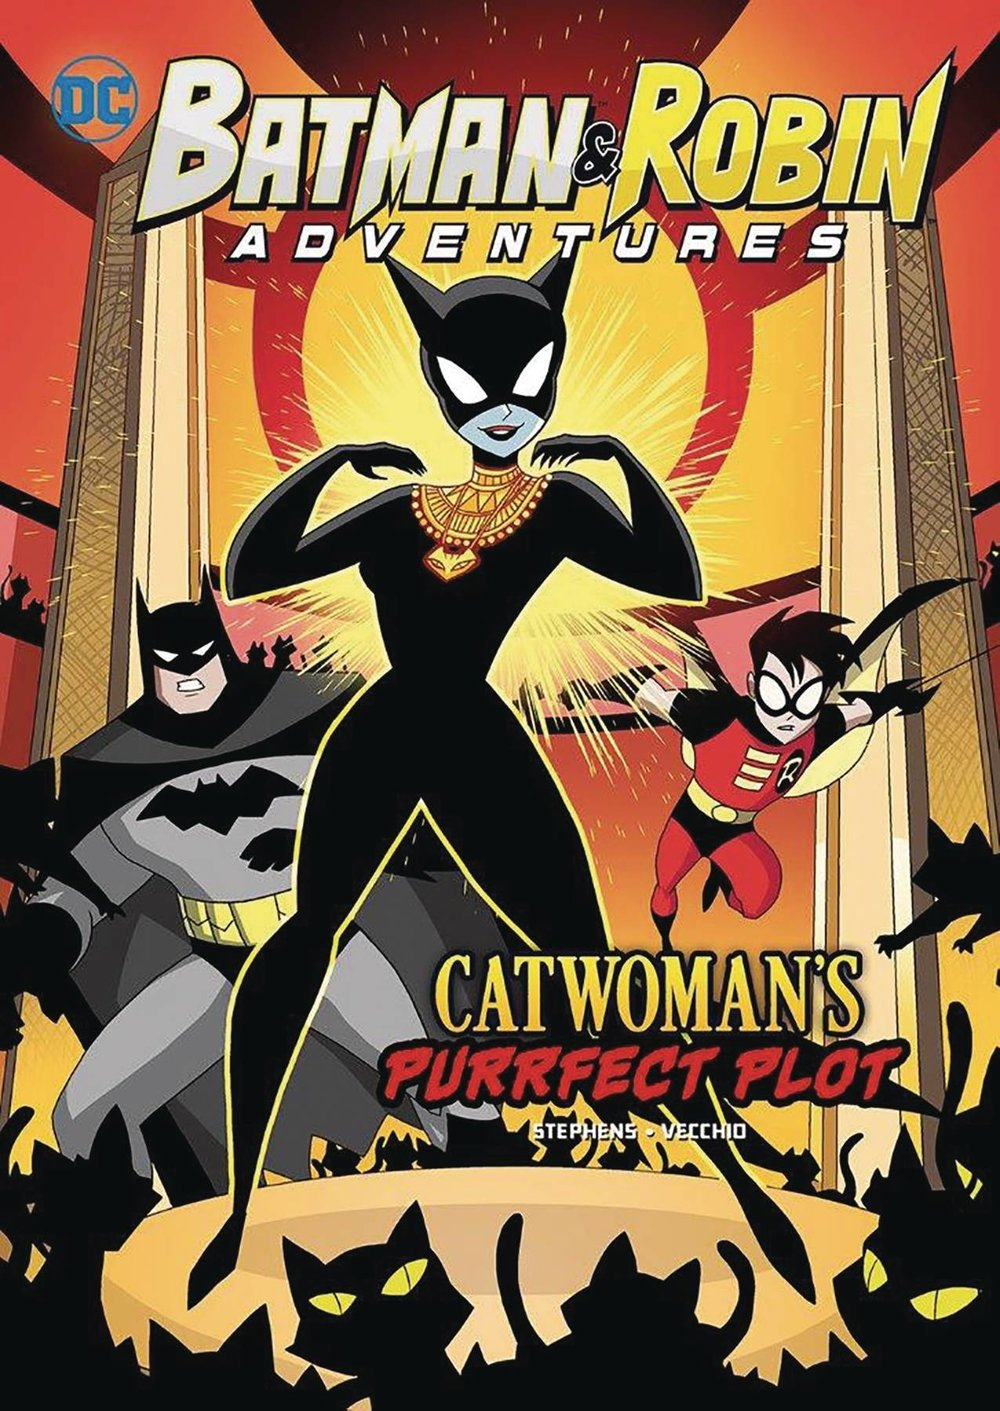 BATMAN & ROBIN ADV YR TP 6 CATWOMANS PURRFECT PLOT.jpg